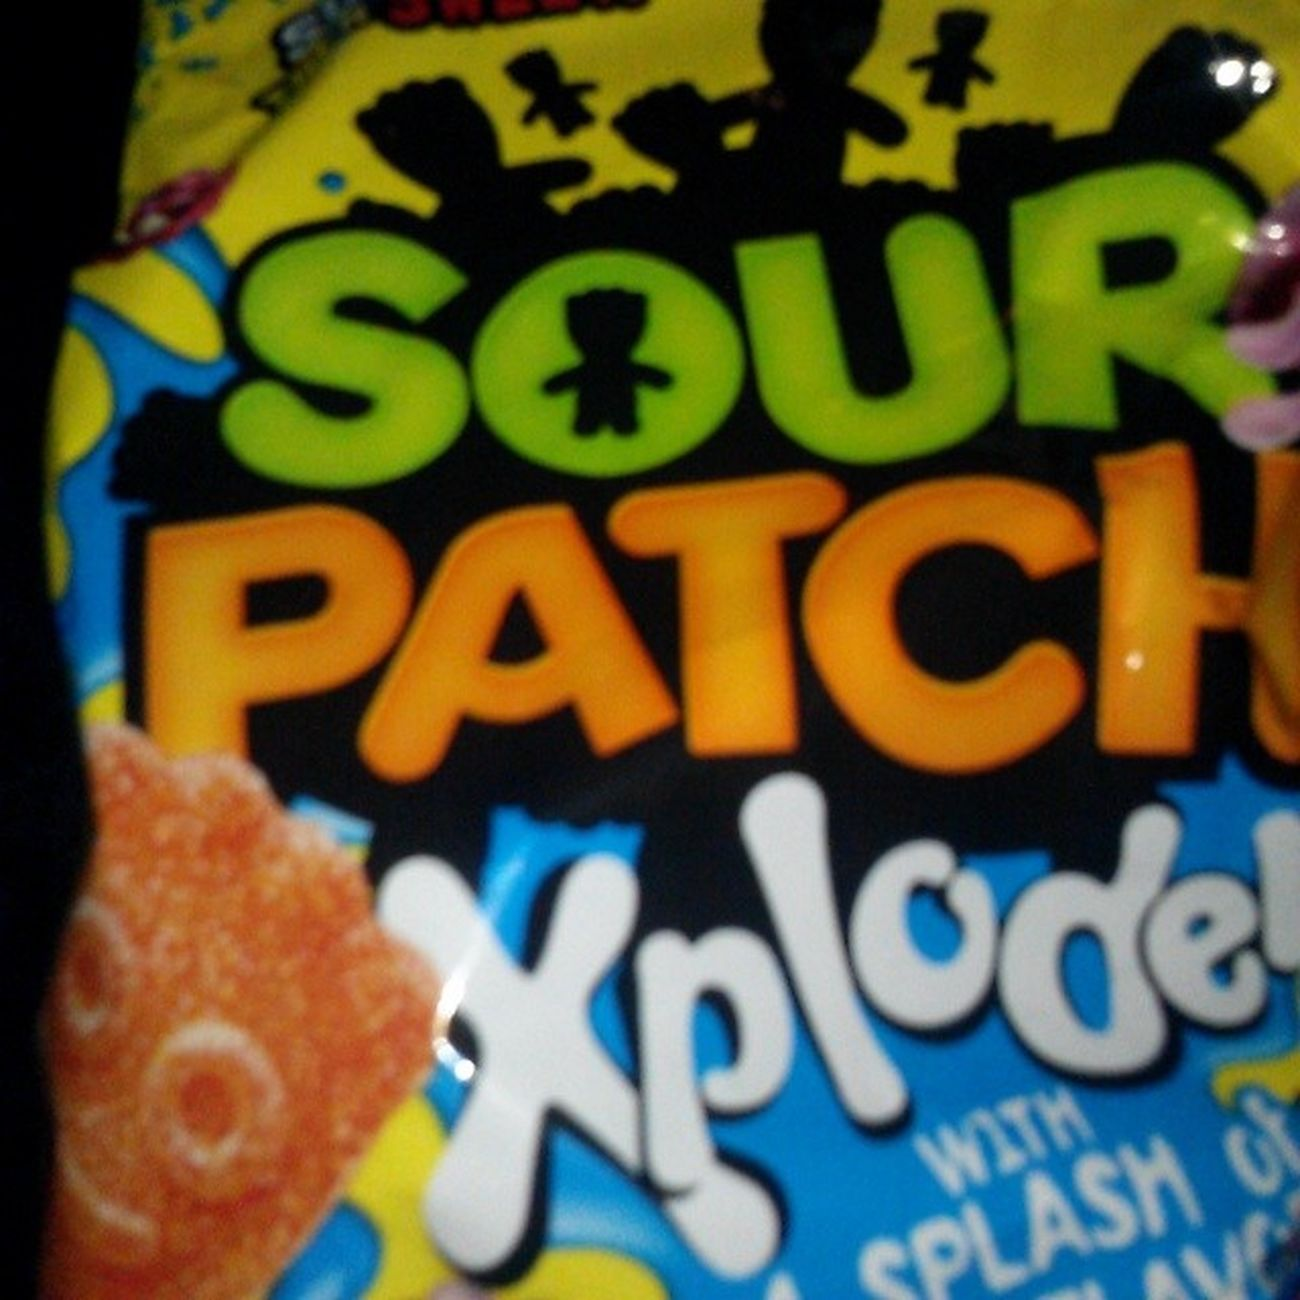 Day11 Decemverchallenge Addiction Sourpatches xploders :)